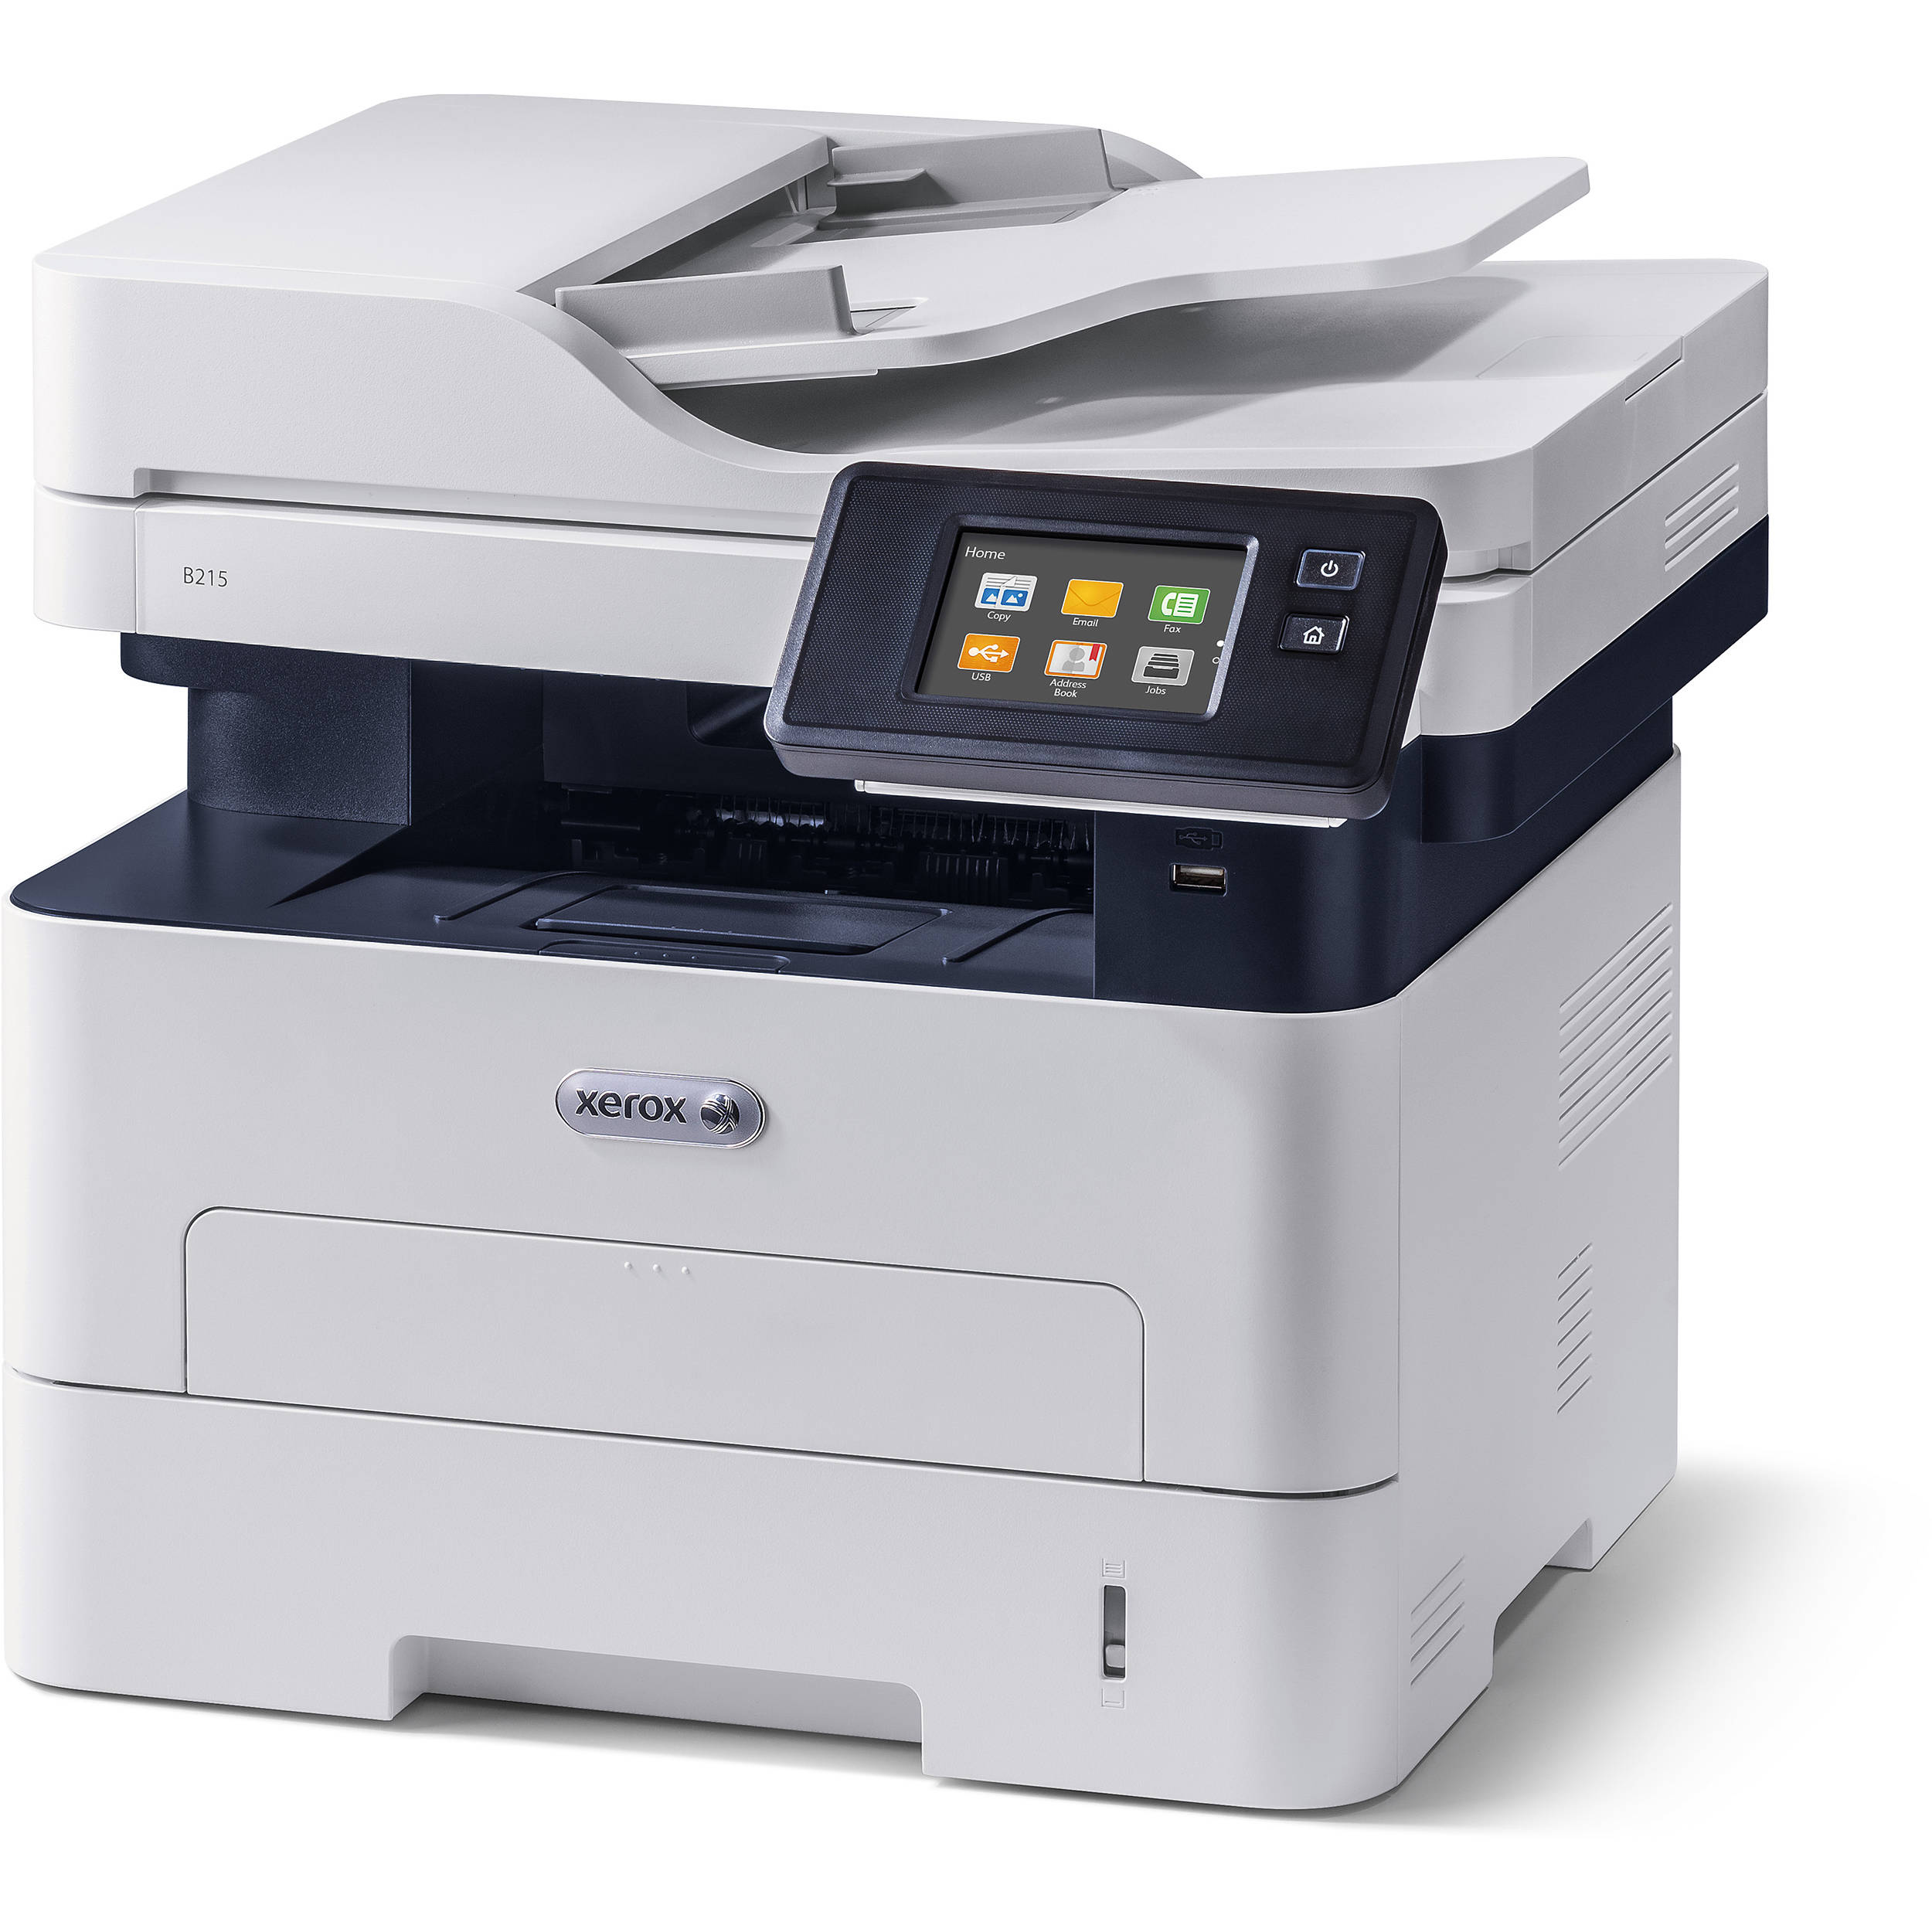 XEROX B215 printer Sales and Rental